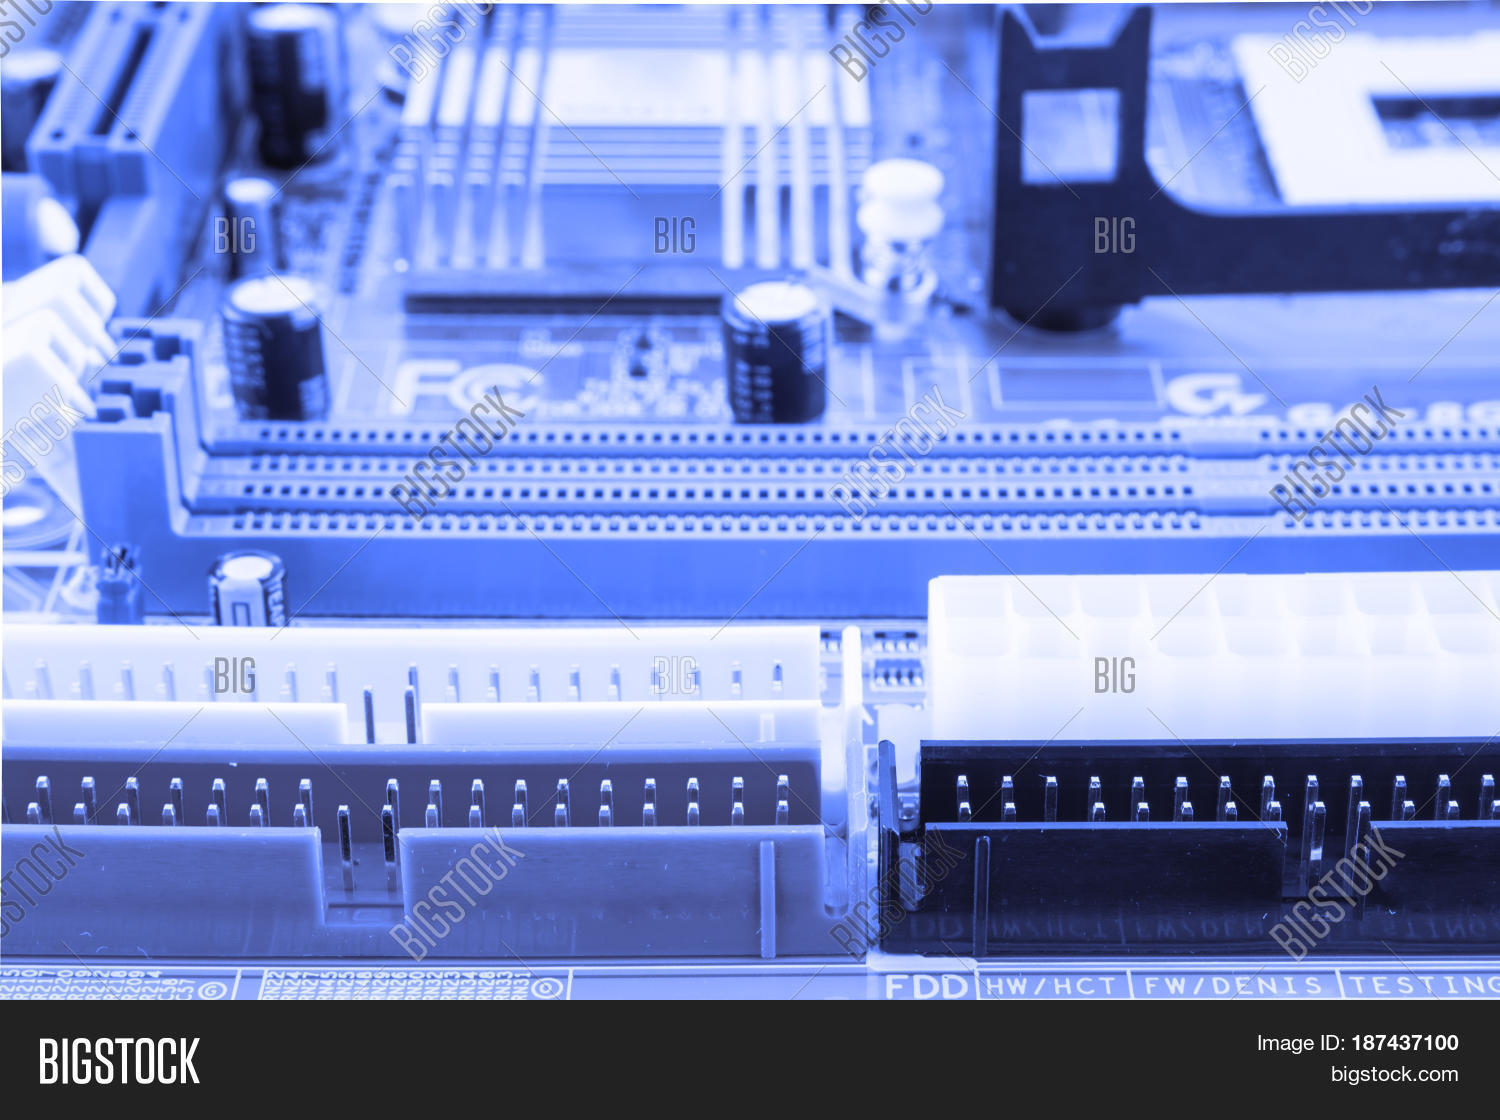 Circuit Board Electronic Computer Image Photo Bigstock Testing Hardware Technology Motherboard Digital Chip Tech Science Backg